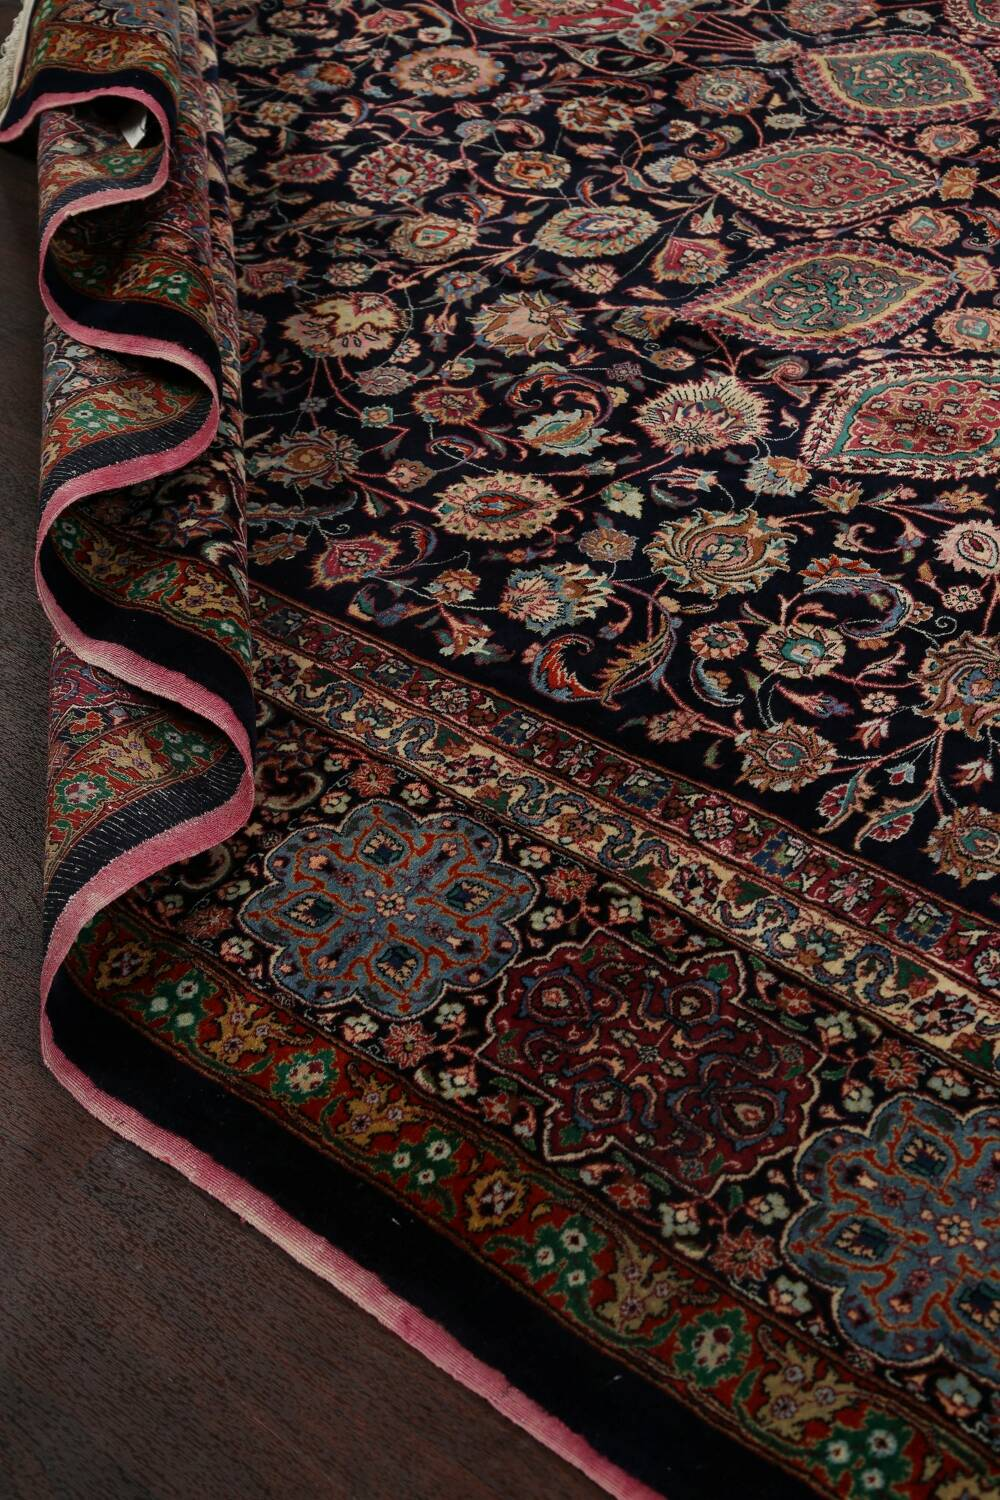 Large Floral Mashad Persian Area Rug 11x15 image 19